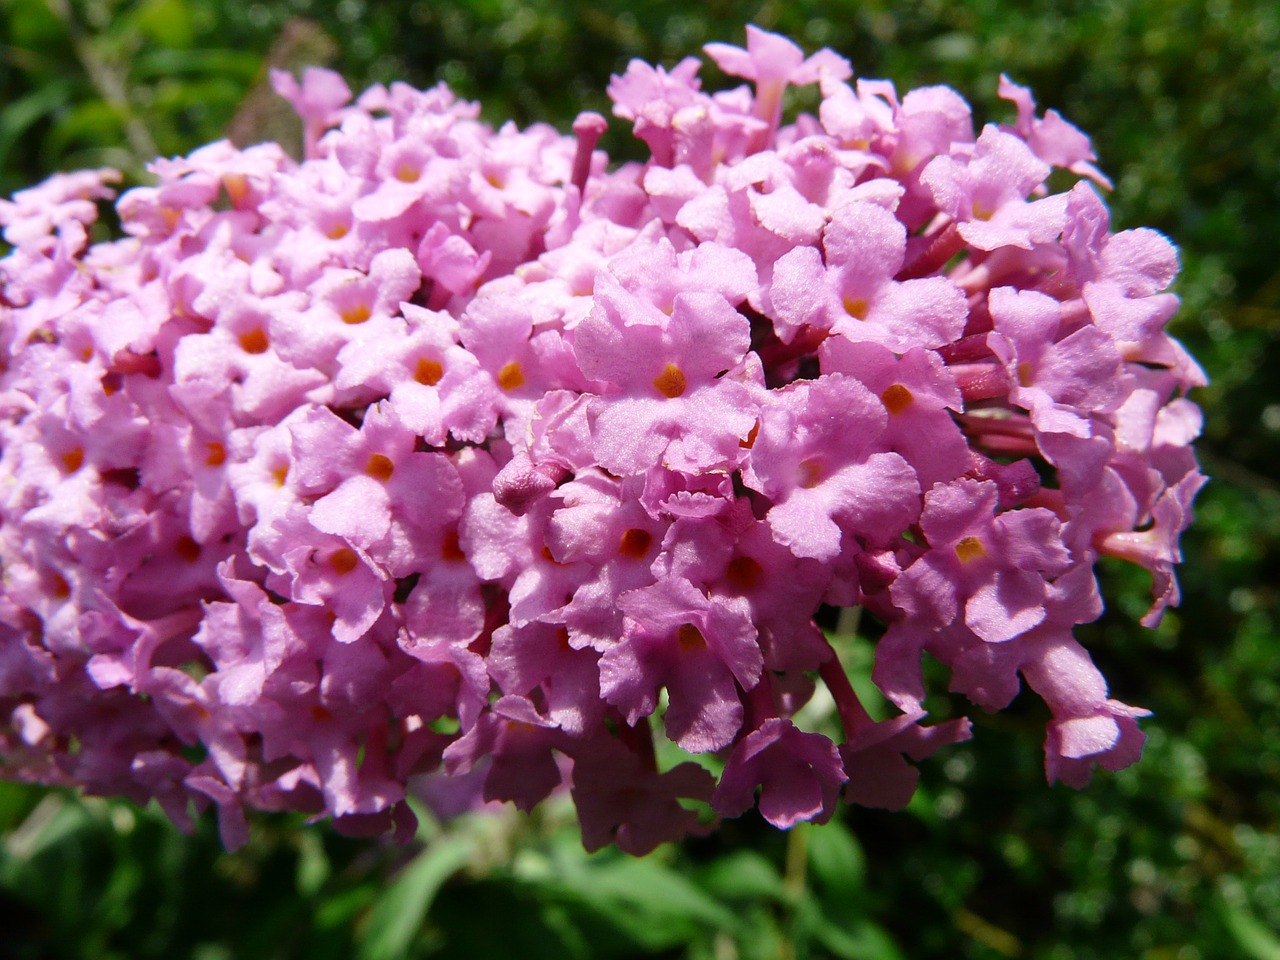 summer lilac,buddleja,flower,plant,colorful,beautiful,summer,flora,lilac,free pictures, free photos, free images, royalty free, free illustrations, public domain